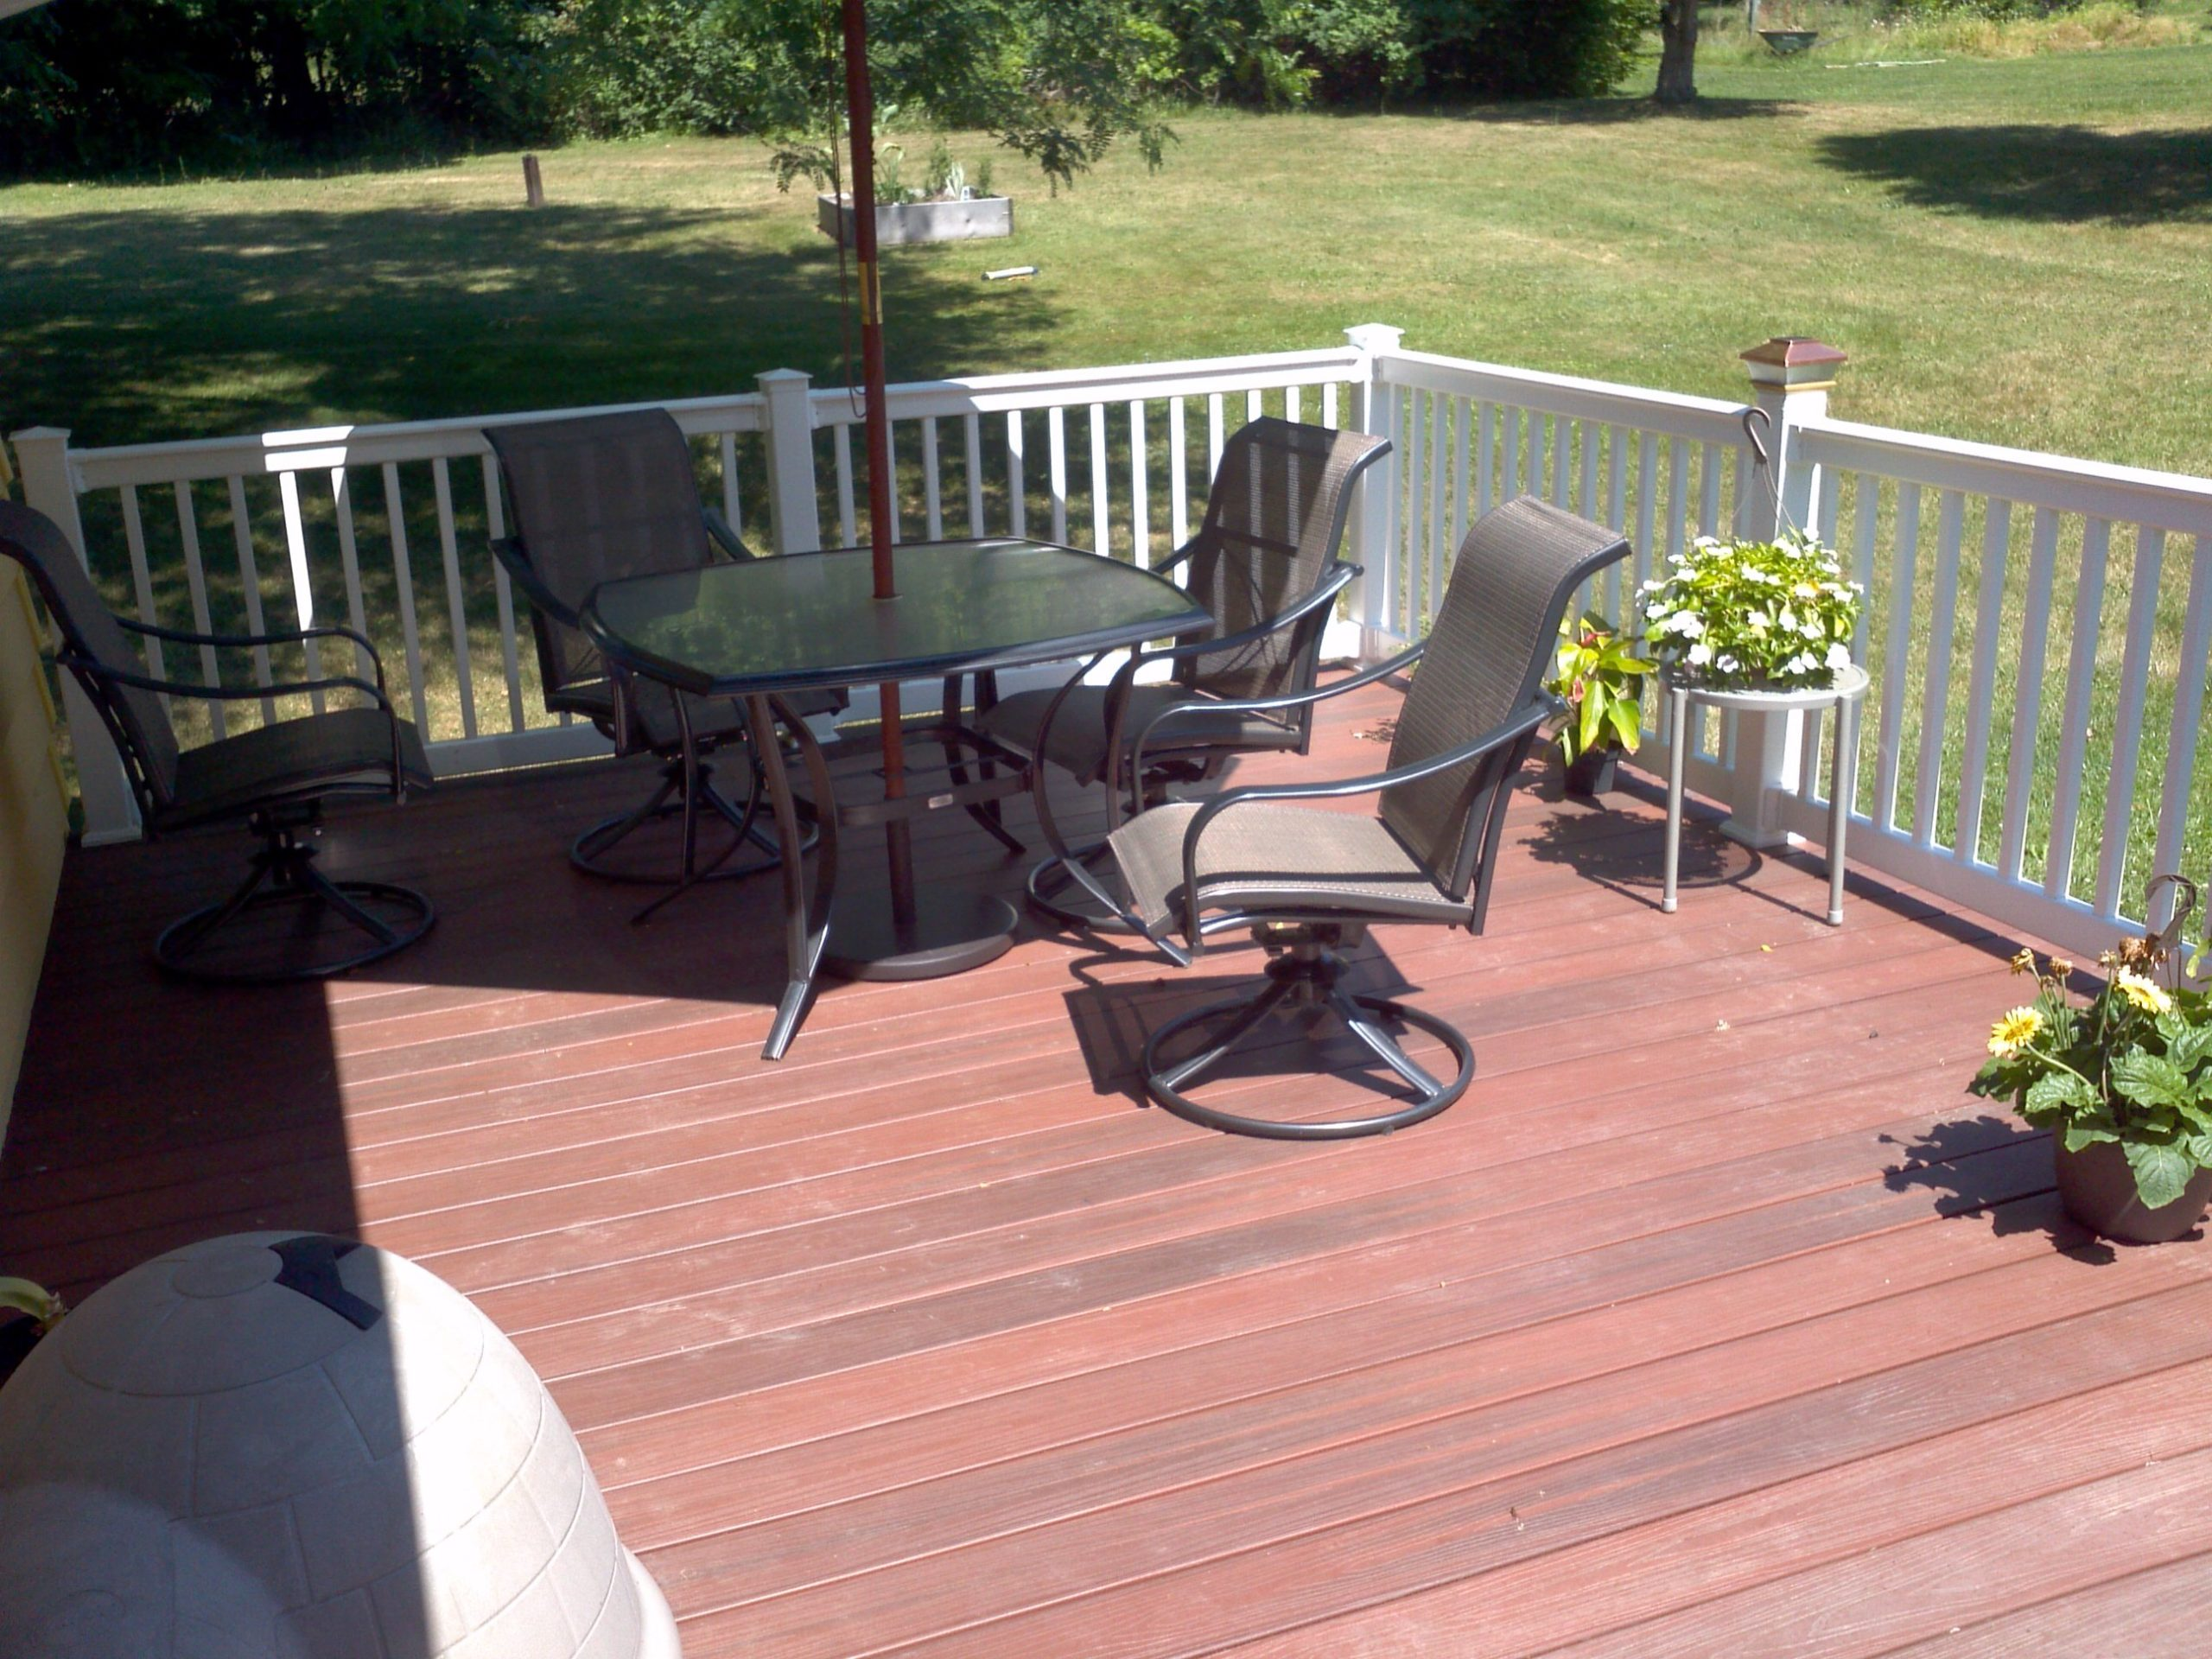 Cleaning posite and Vinyl Decking